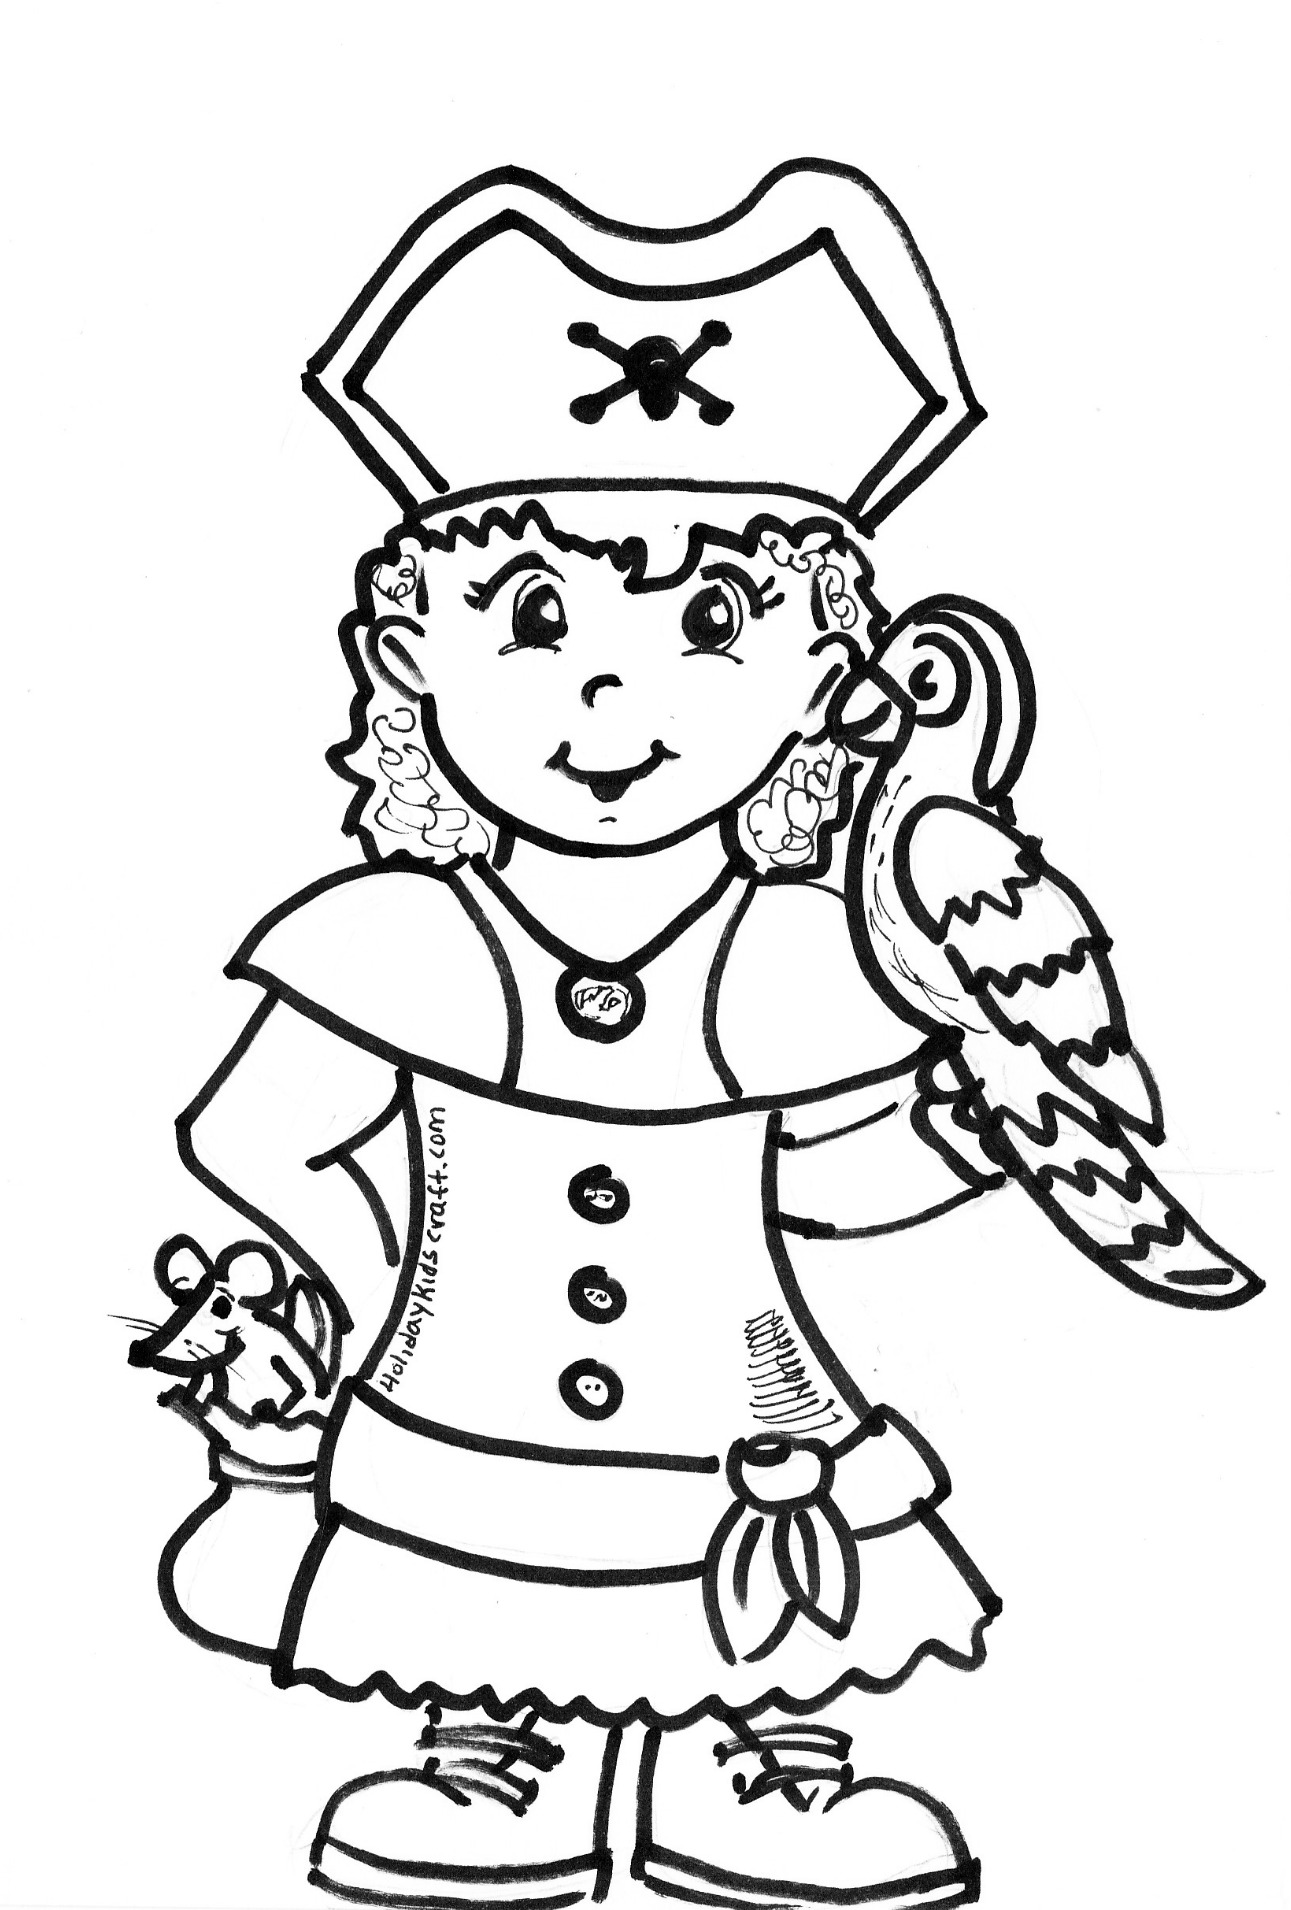 pirates pictures to colour pirate coloring pages pirates to colour pictures